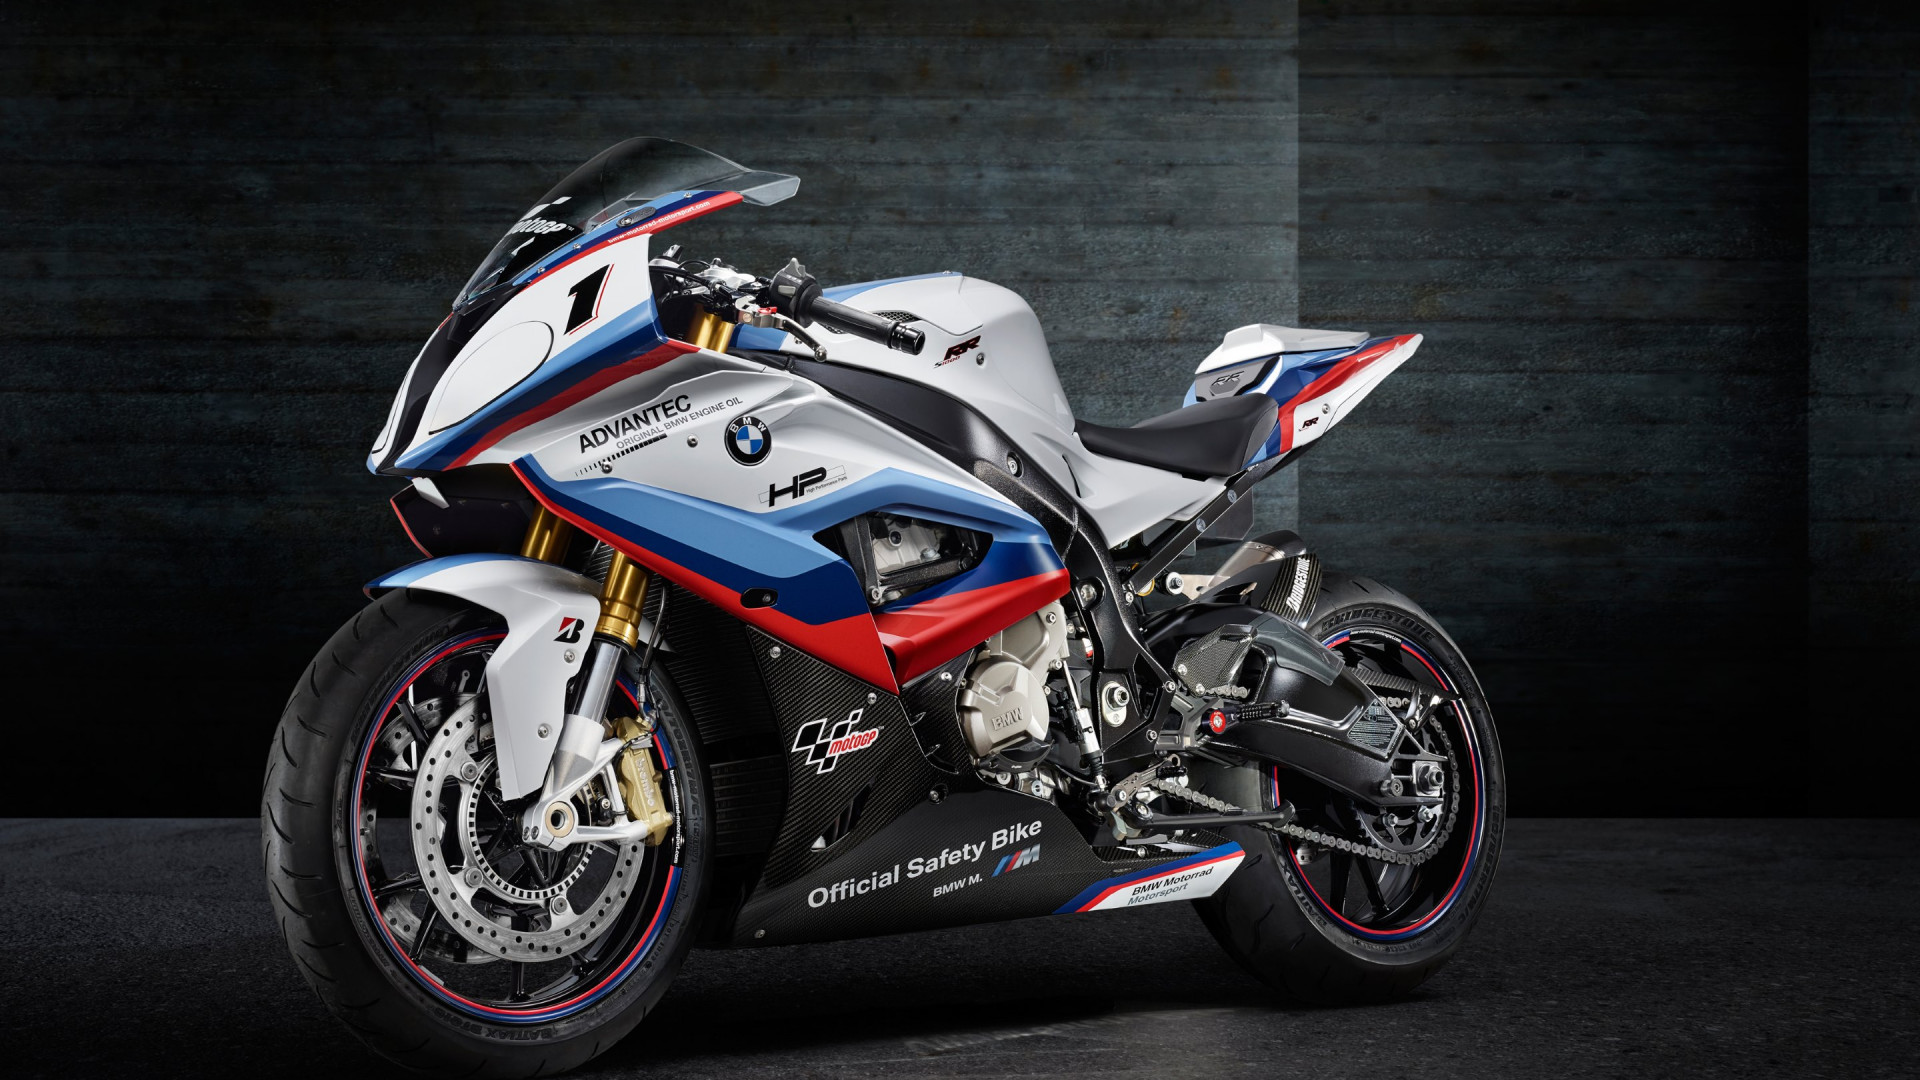 BMW S1000RR MotoGP Safety Motorcycle | 1920x1080 wallpaper